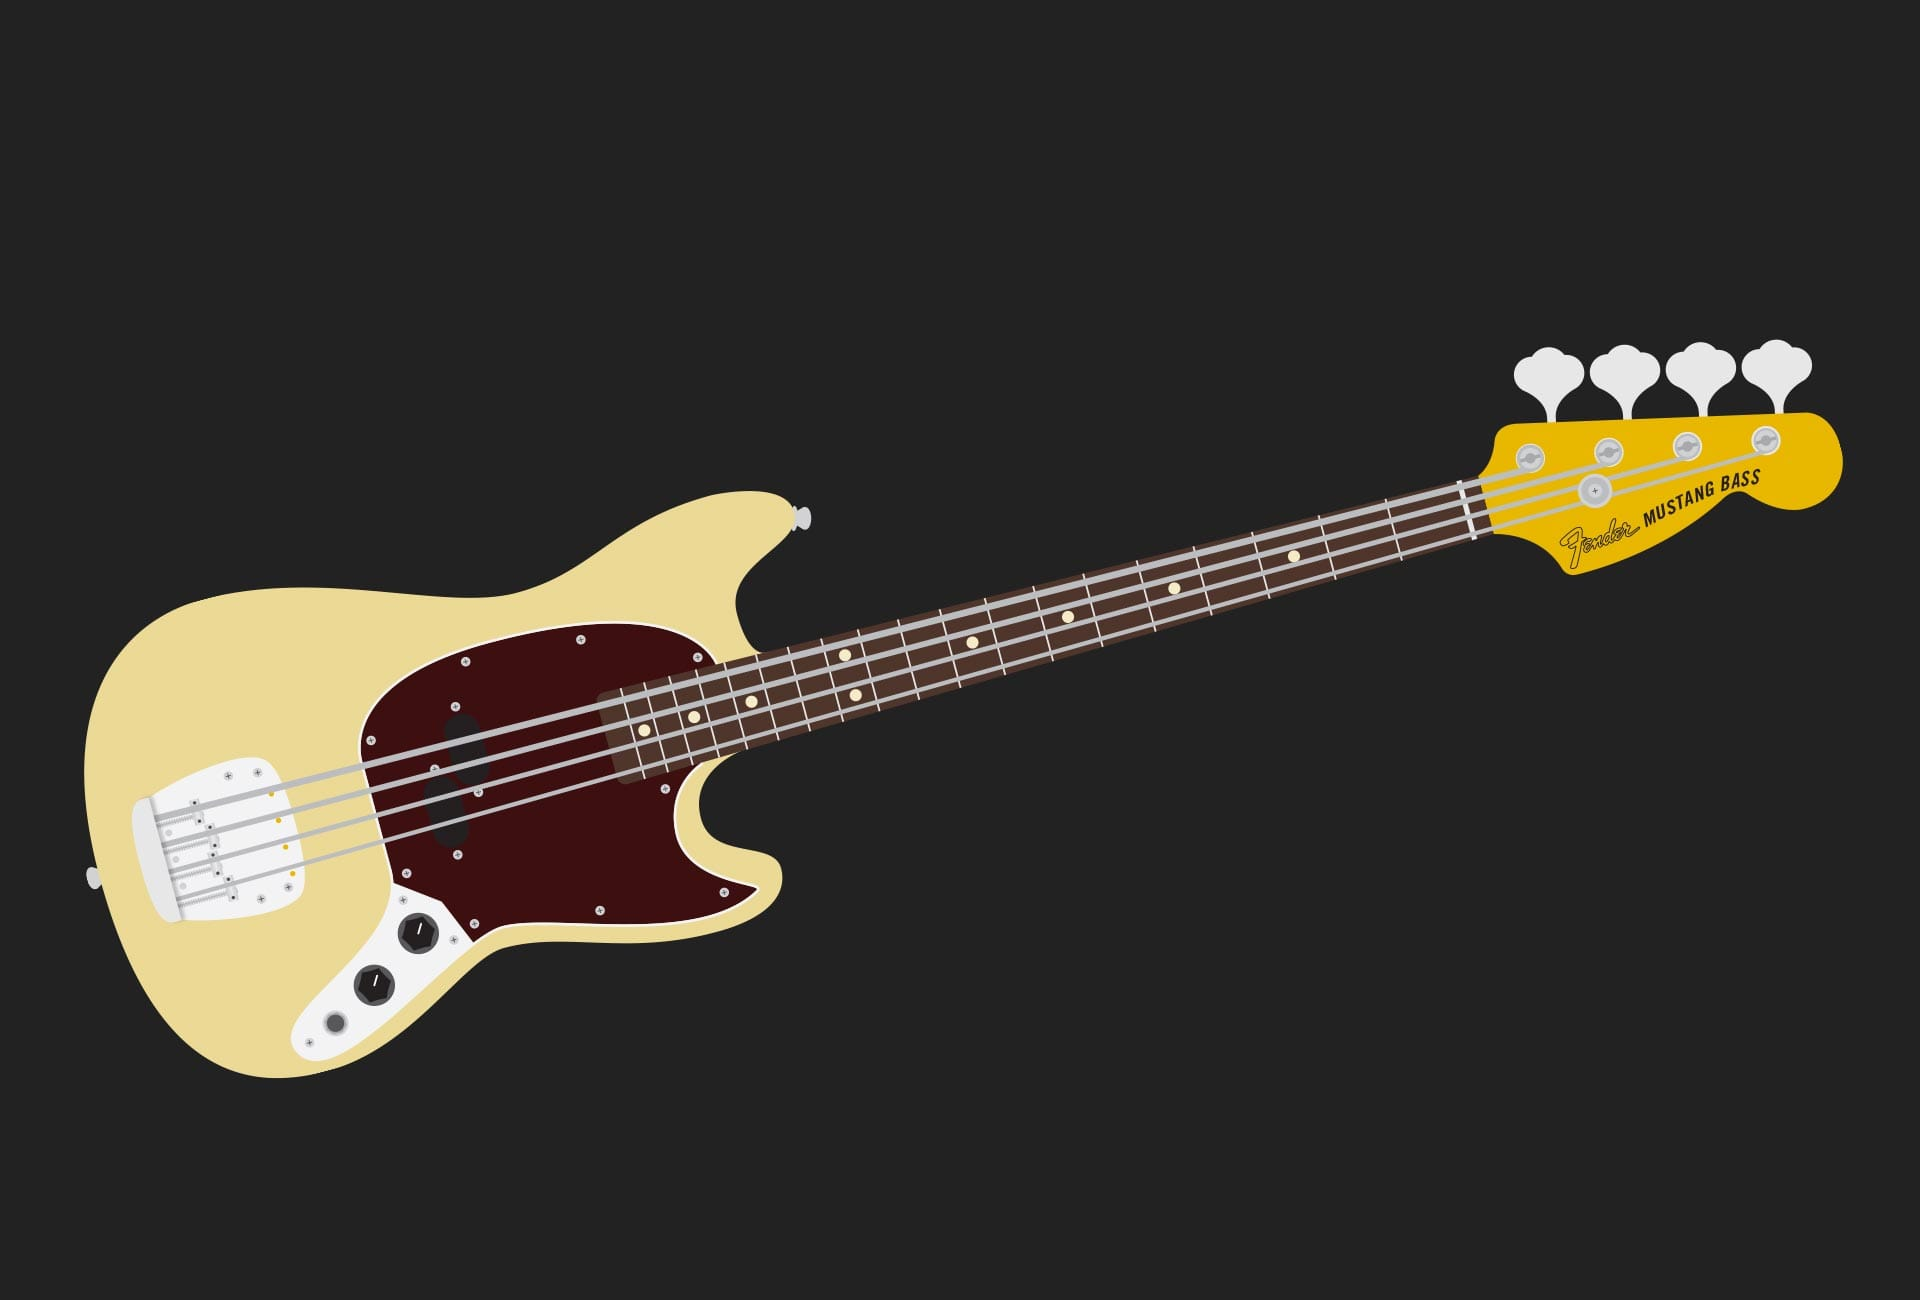 Illustration: Music - Fender Mustang